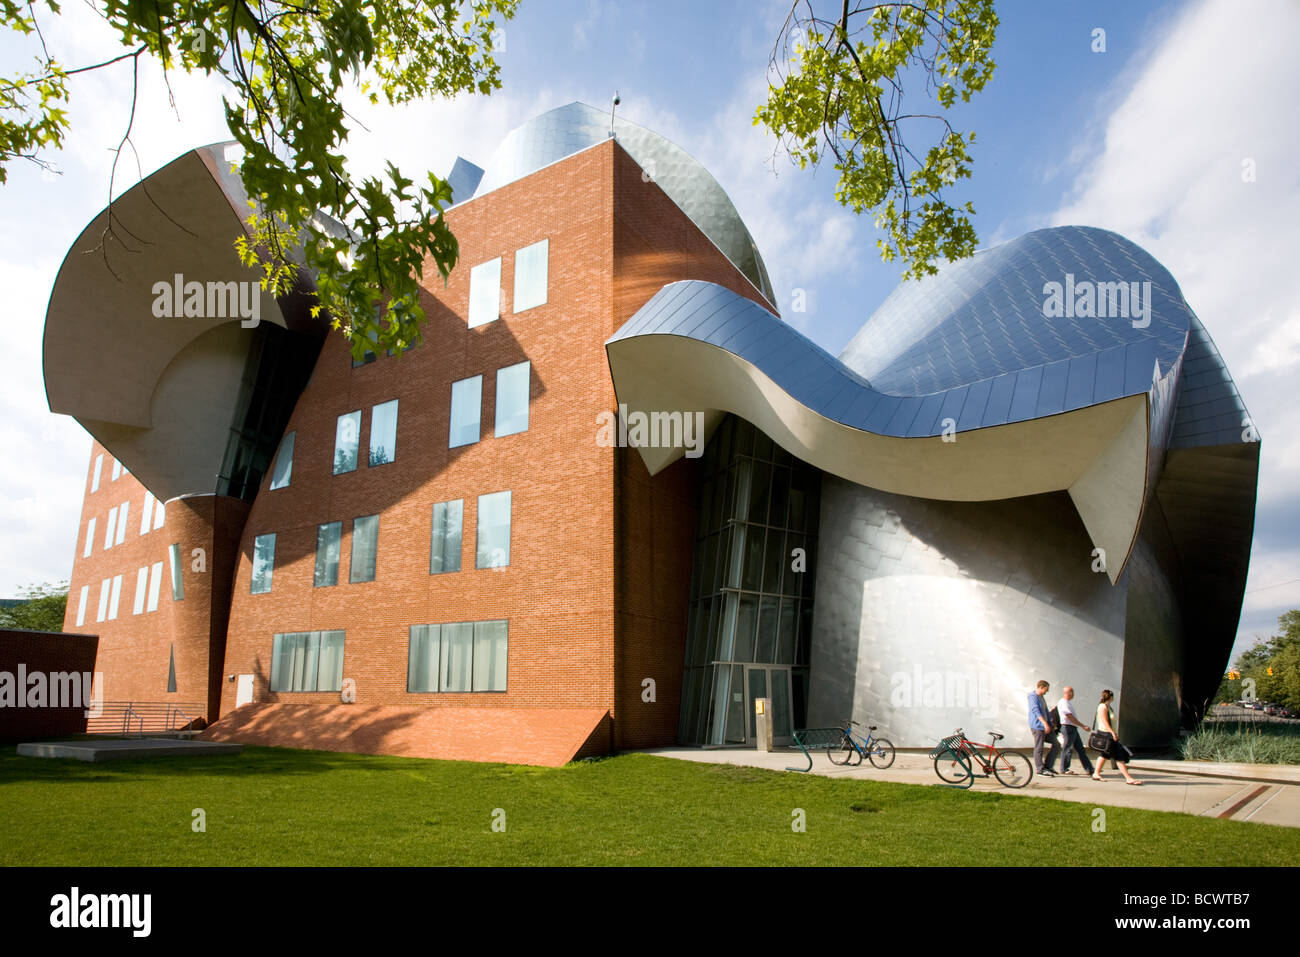 Peter B Lewis Building by Frank Gehry on Case Western Reserve campus in Cleveland Ohio - Stock Image